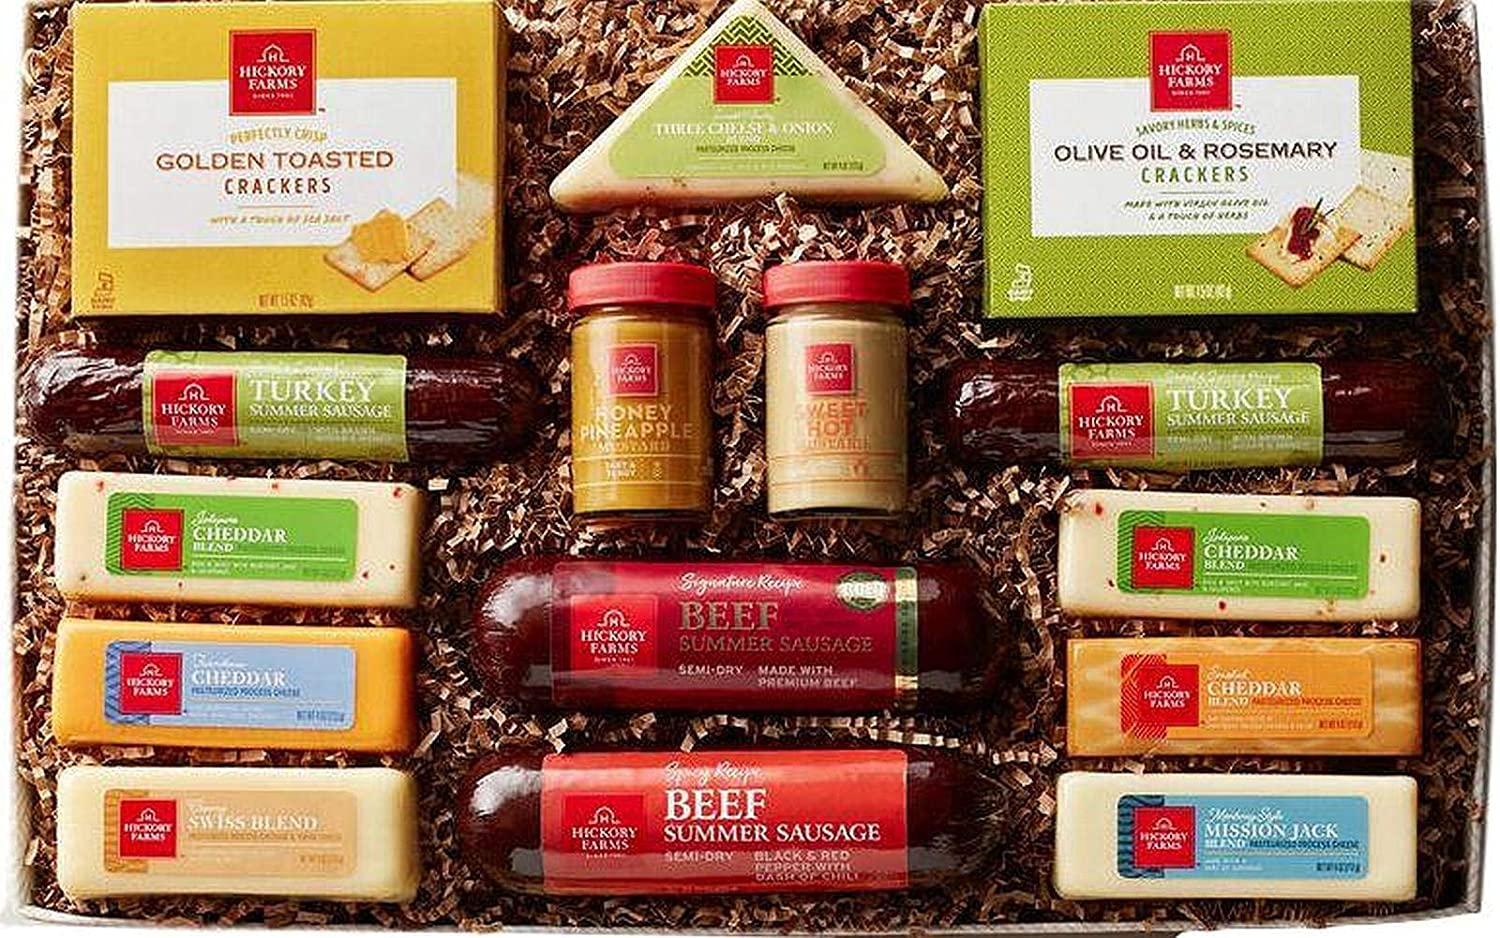 Hickory Farms Home For The Holidays Assortment Meat & Cheese Sampler